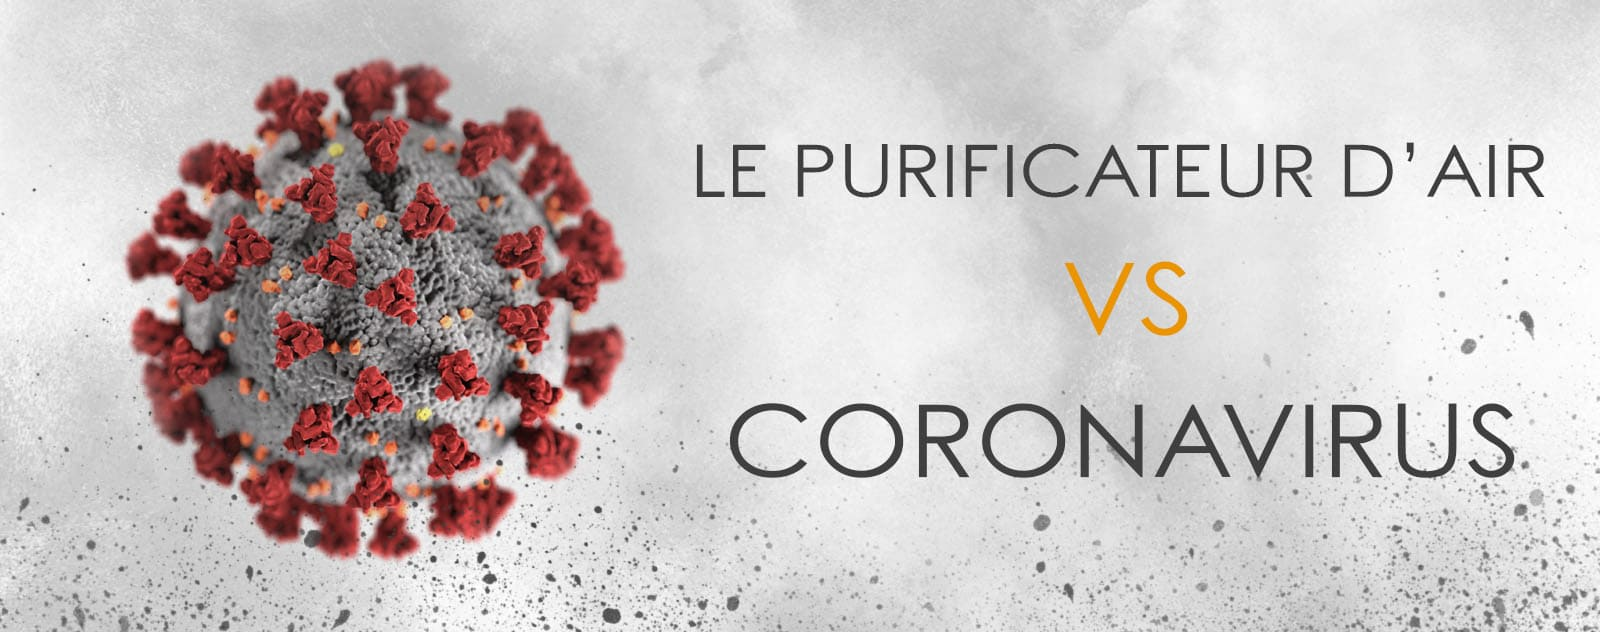 Le Purificateur d'air face au Coronavirus